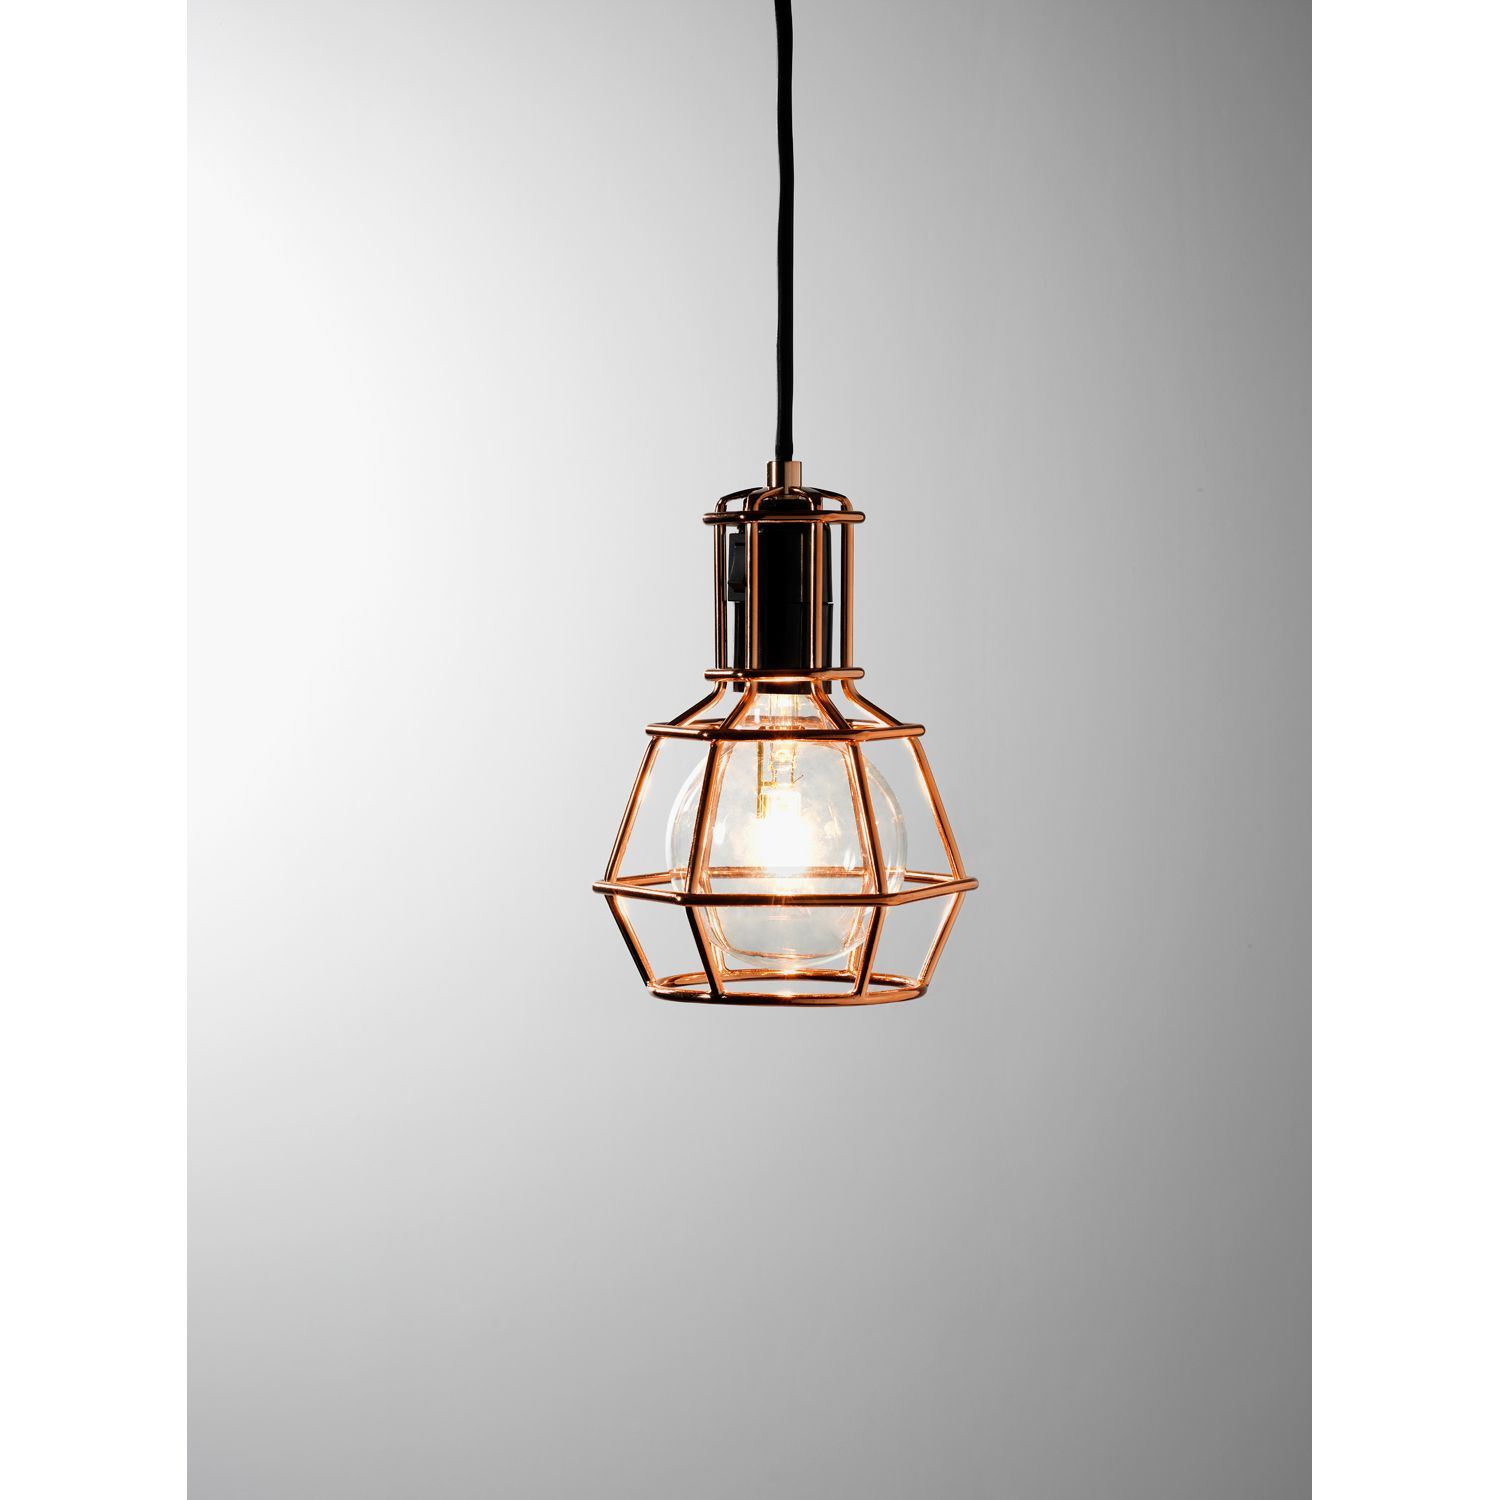 lamp releases work larson lamps magnetic